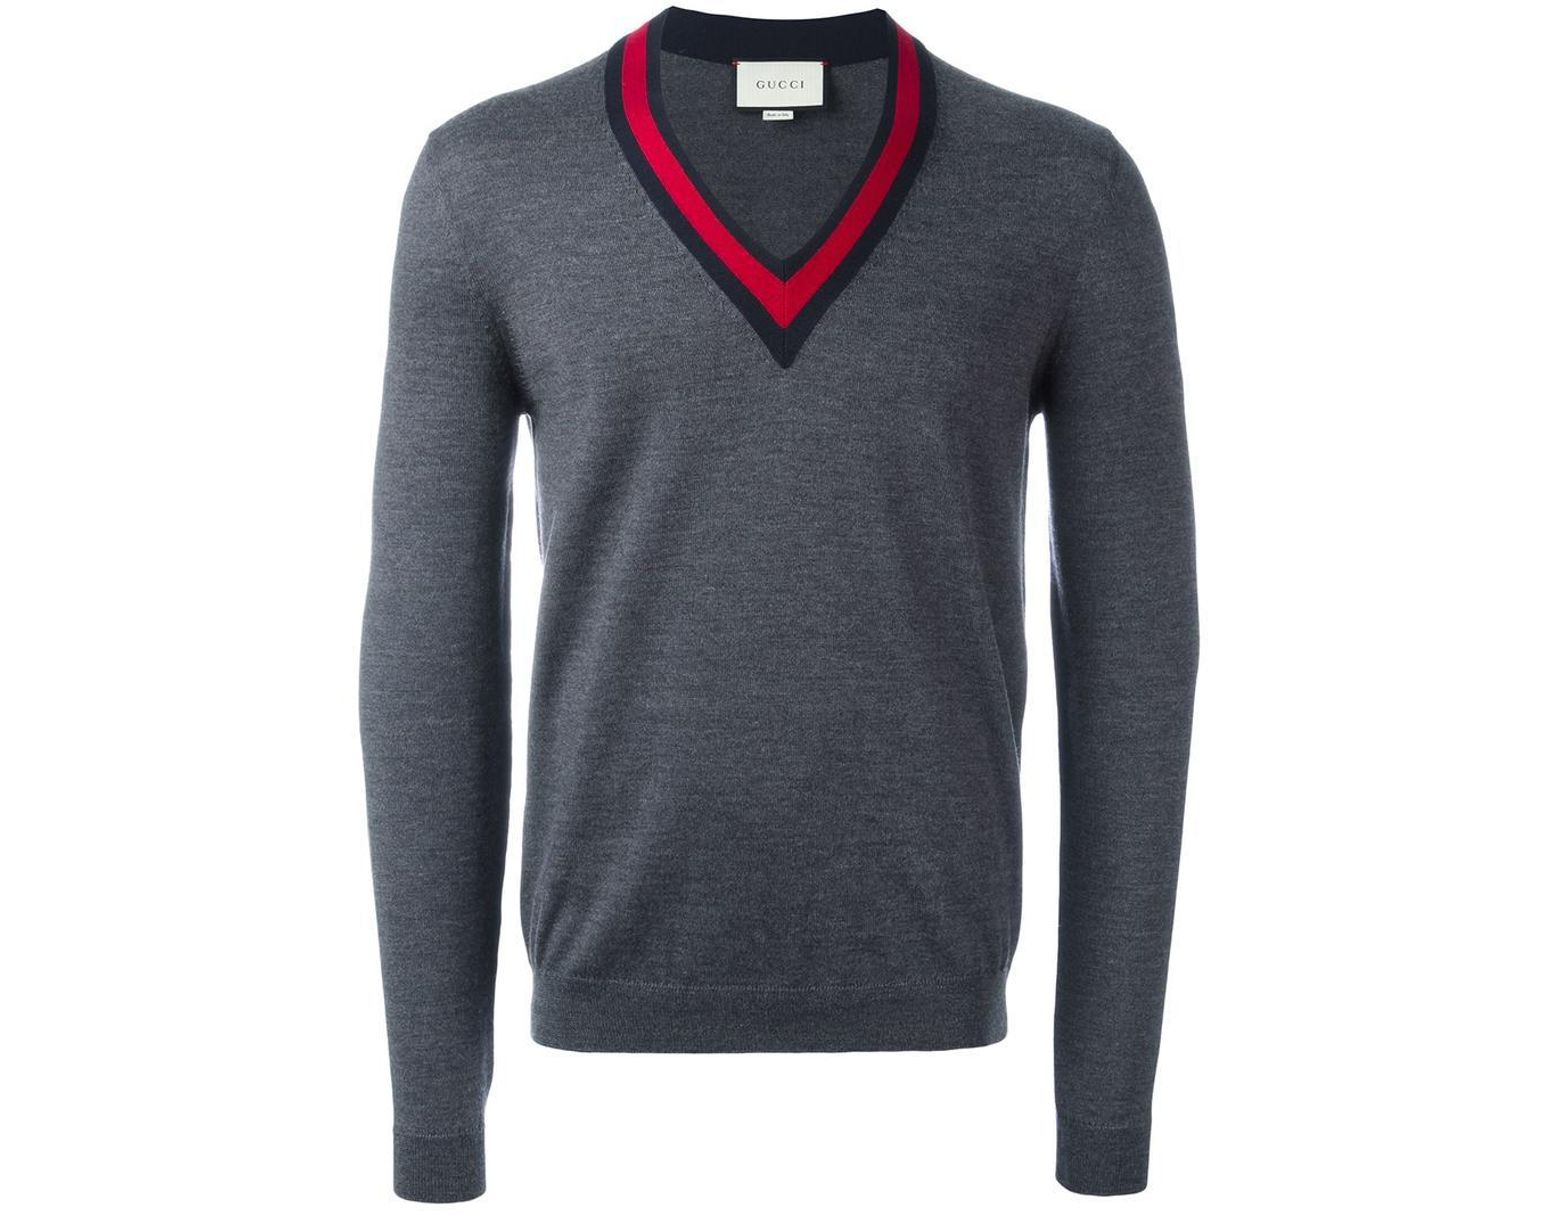 775e057fa79 Gucci Web Trim V-neck Jumper in Gray for Men - Lyst